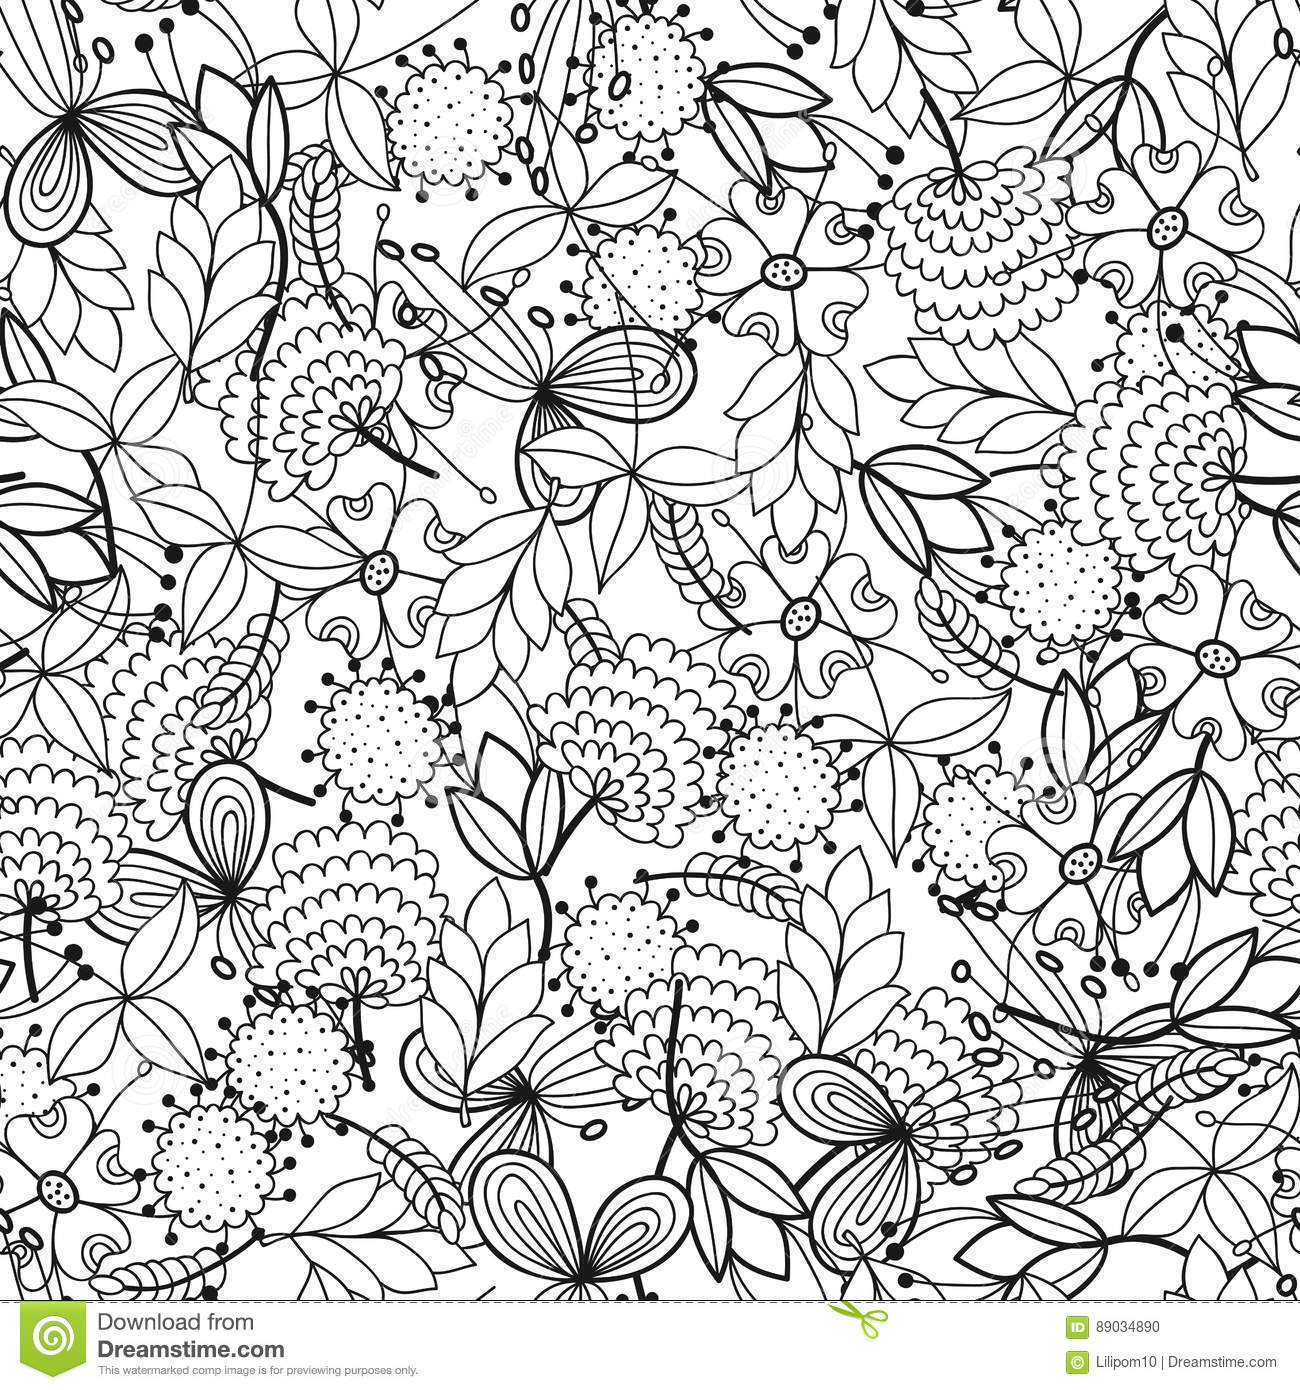 Black And White Seamless Pattern With Flowers, Leaves For ...